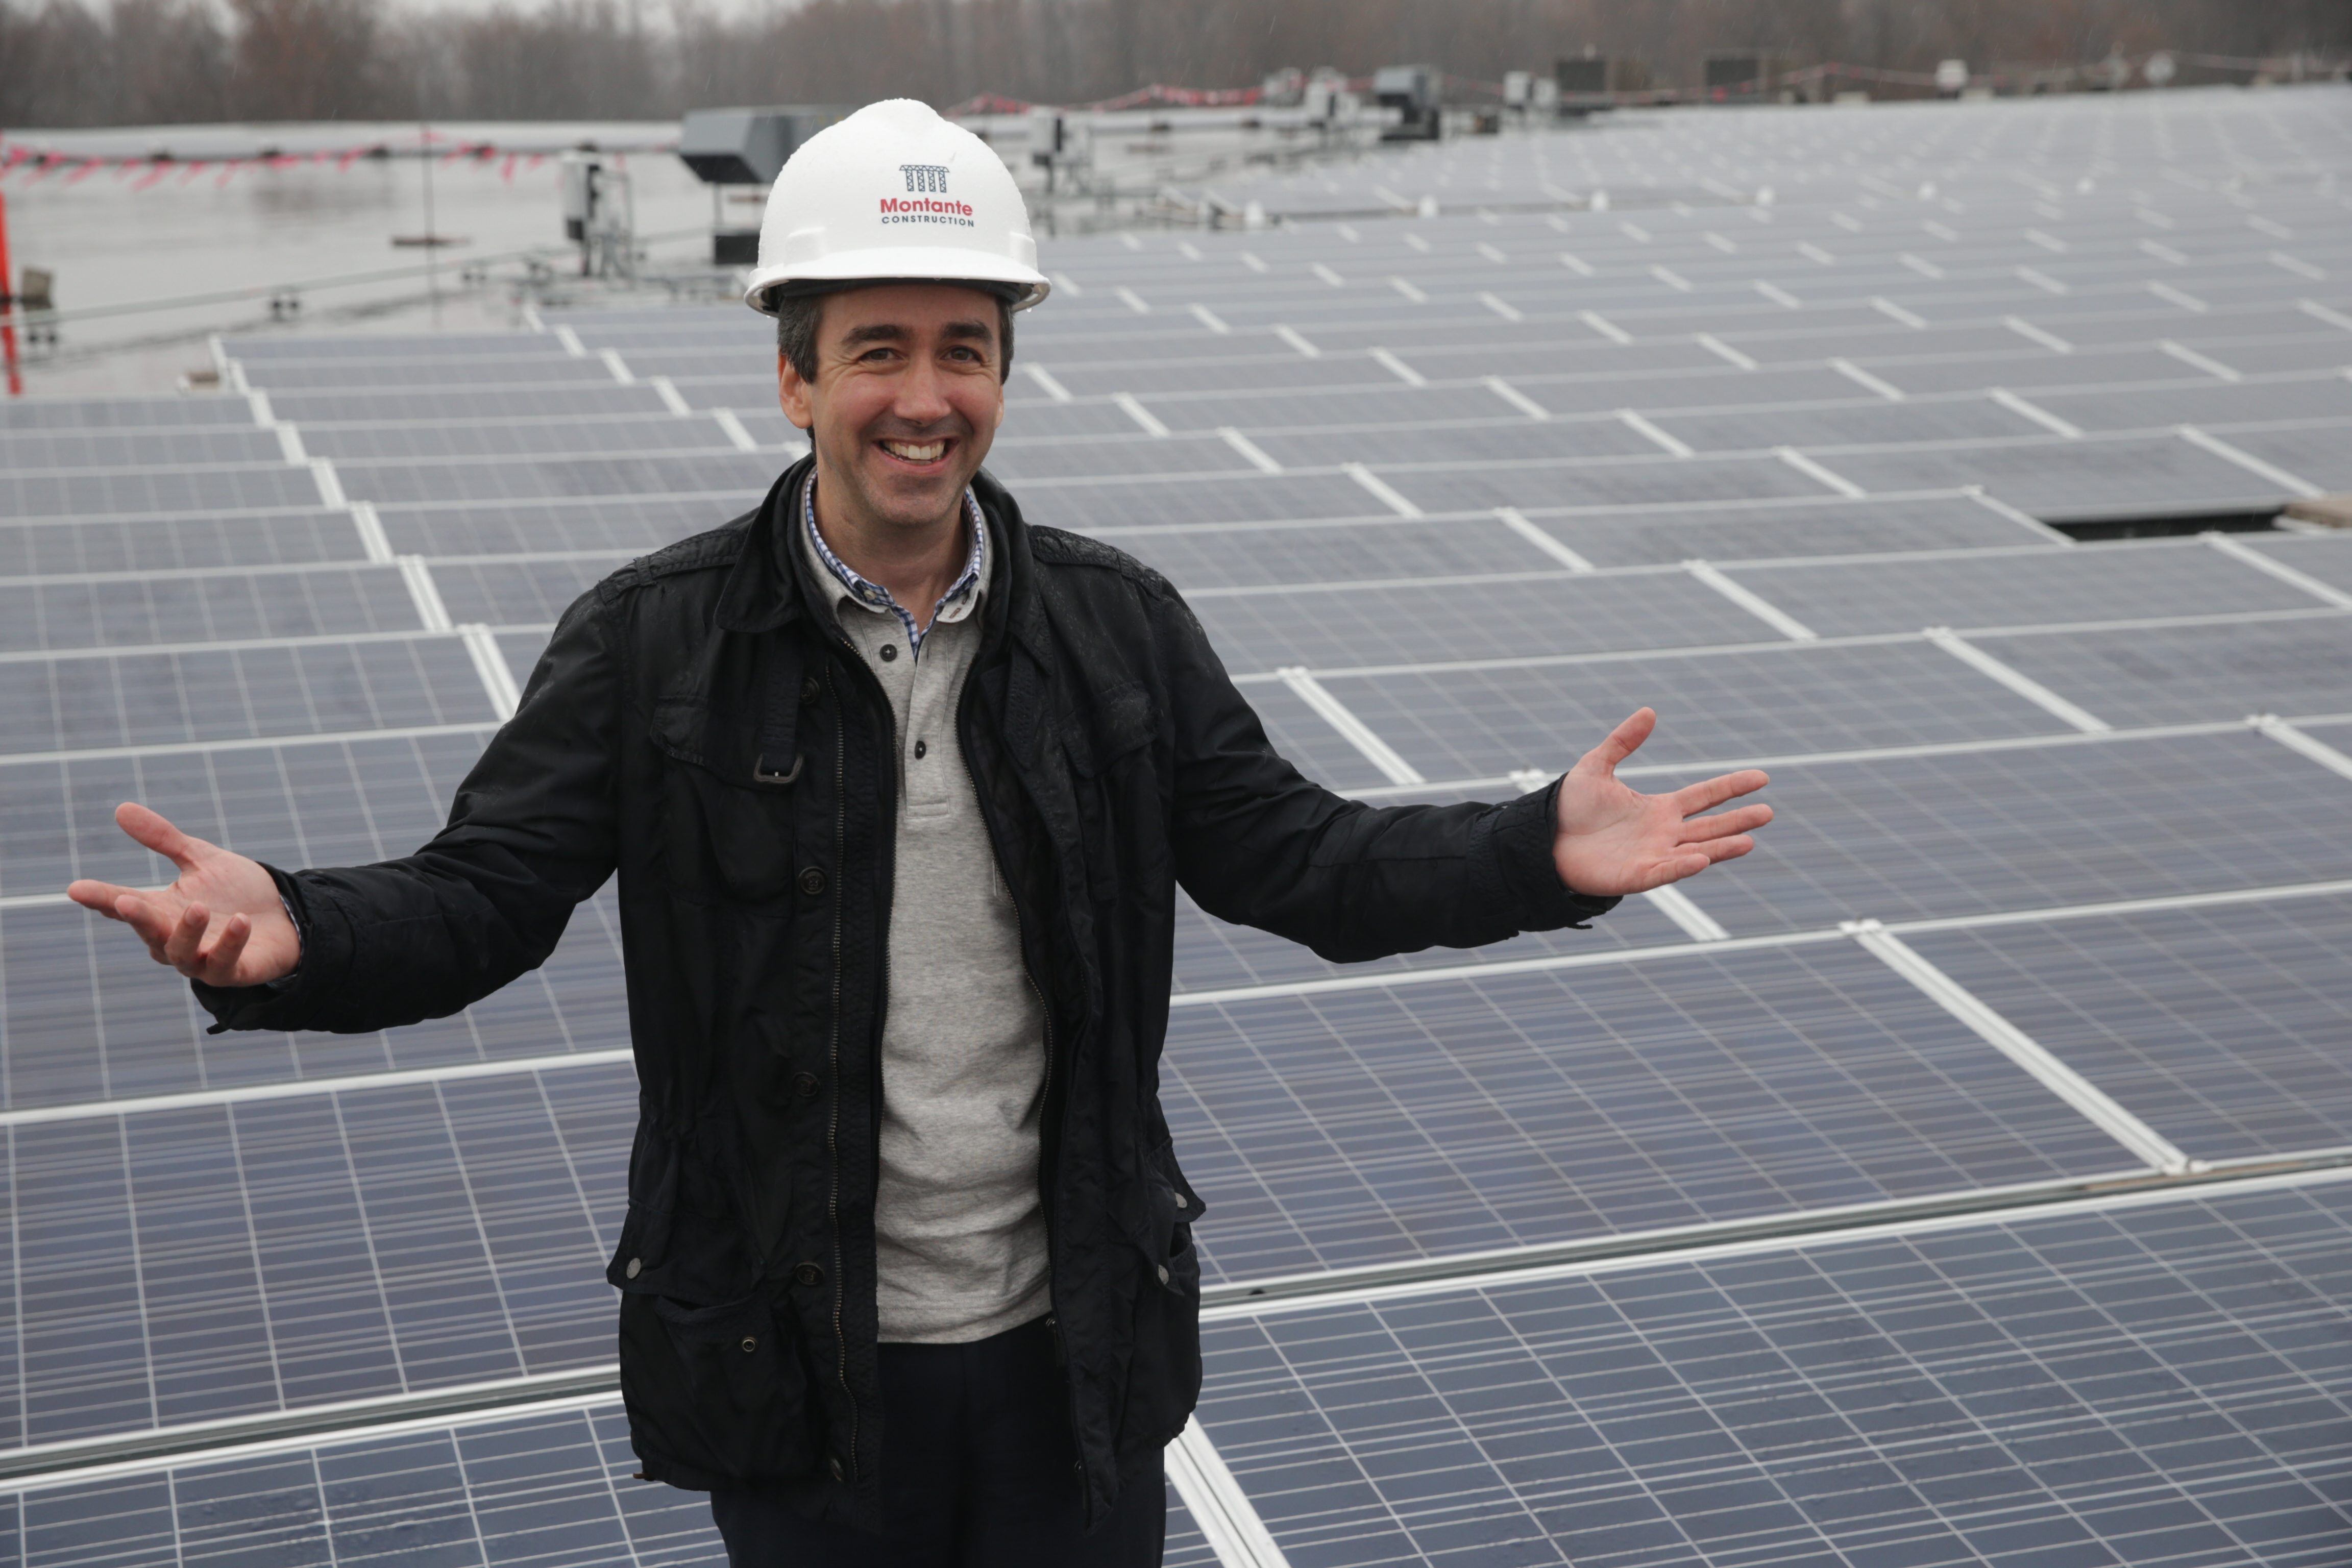 """Daniel Montante, president and co-founder of Montante Solar, says  that Congress' expansion of the tax credit is """"a win-win across the board."""" He is shown at the FedEx distribution center's solar array in the Town of Tonawanda."""""""